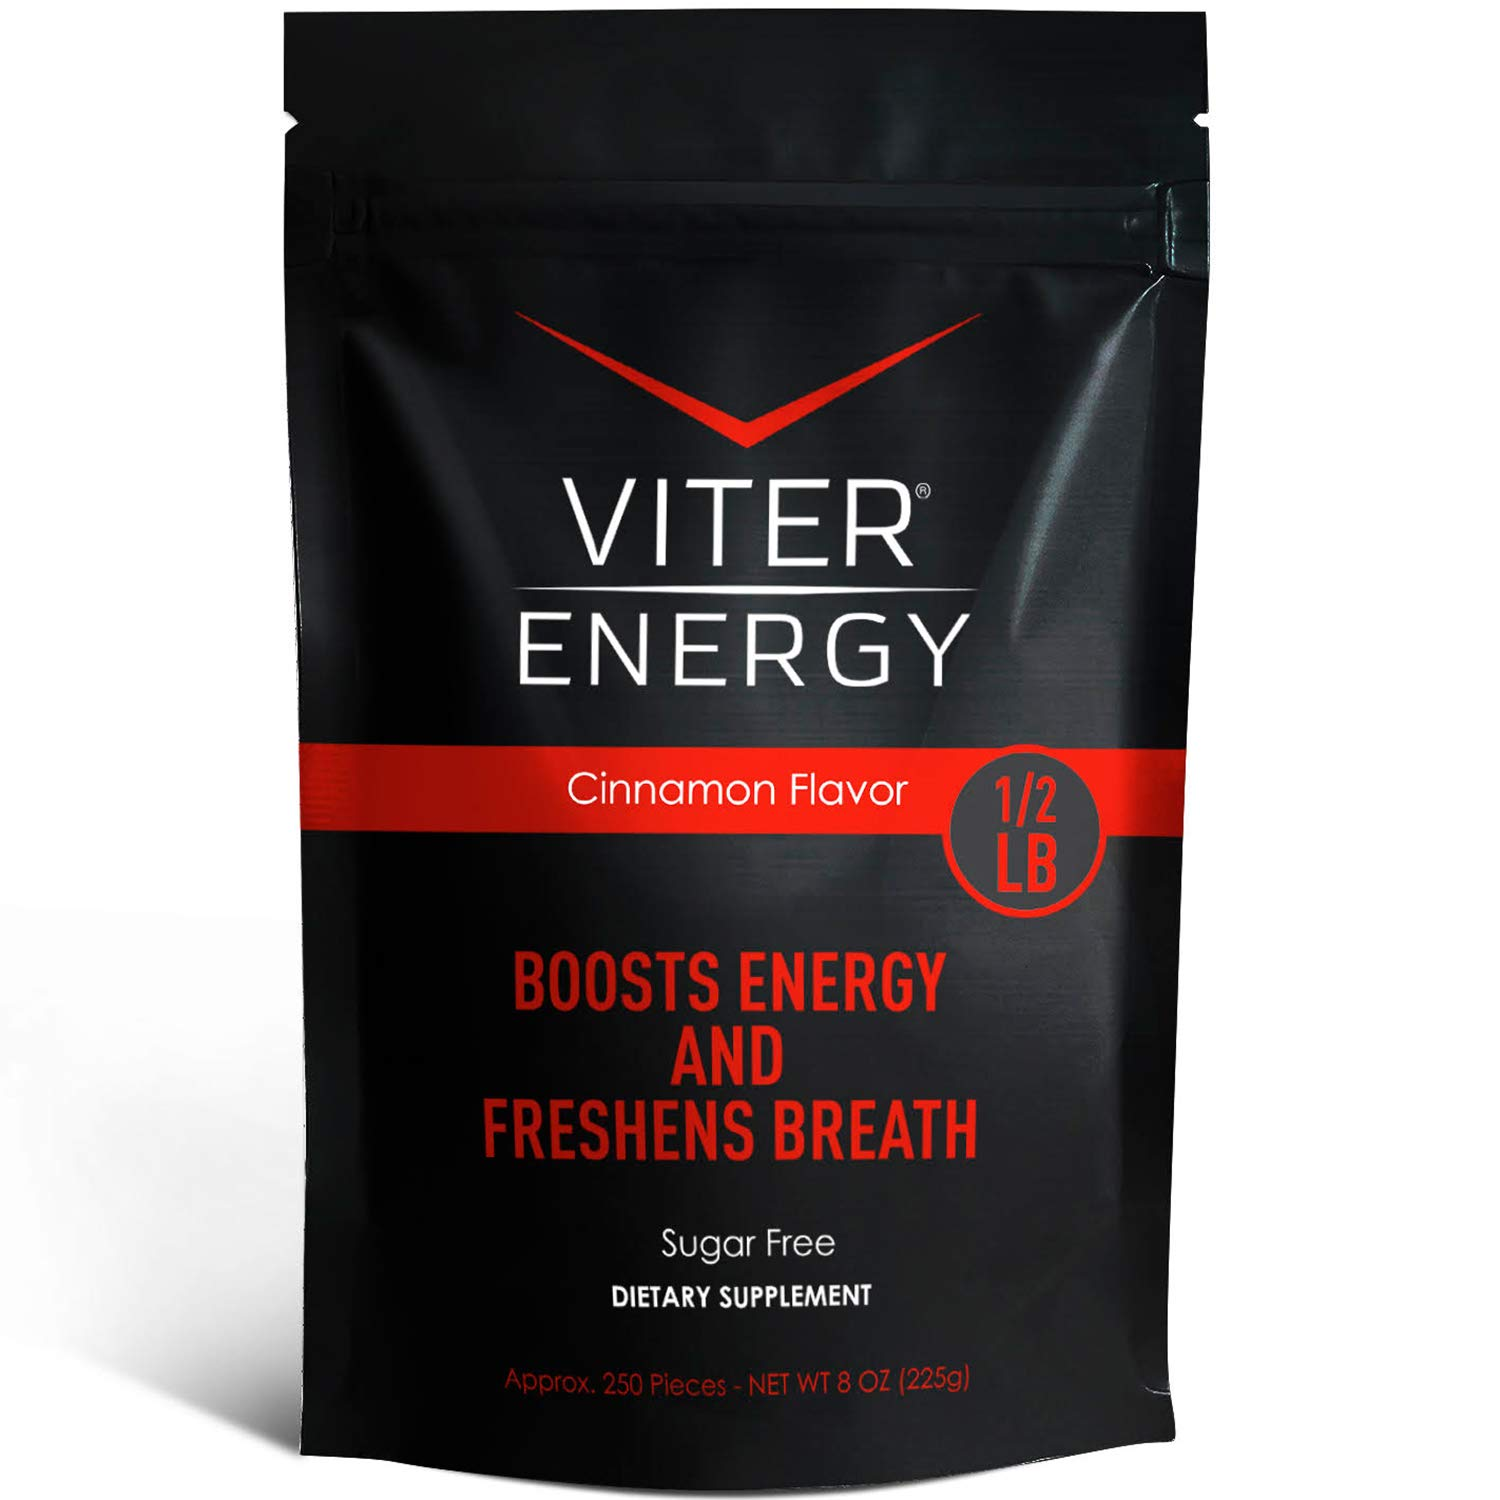 Viter Energy Caffeinated Mints - 40mg Caffeine & B-Vitamins Per Powerful Sugar Free Mint. Boost Energy, Focus & Fresh Breath. 2 Pieces Replace 1 Coffee (Cinnamon, 1/2 LB Bulk (Mints Only))